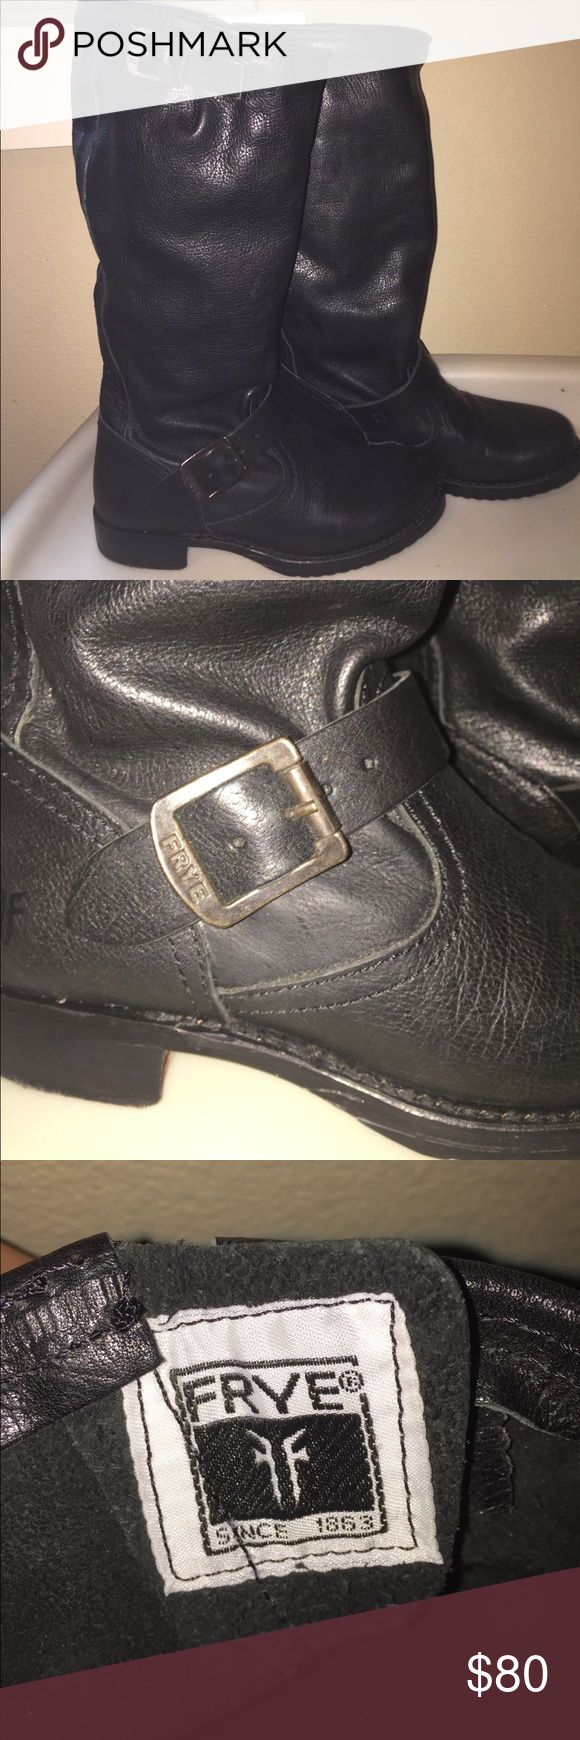 Black Frye Riding Boots Maybe worn once or twice, still has that new shoe smell! The zippers work, authentic Frye boots! Questions? Let me know :) Price is firm. Frye Shoes Over the Knee Boots